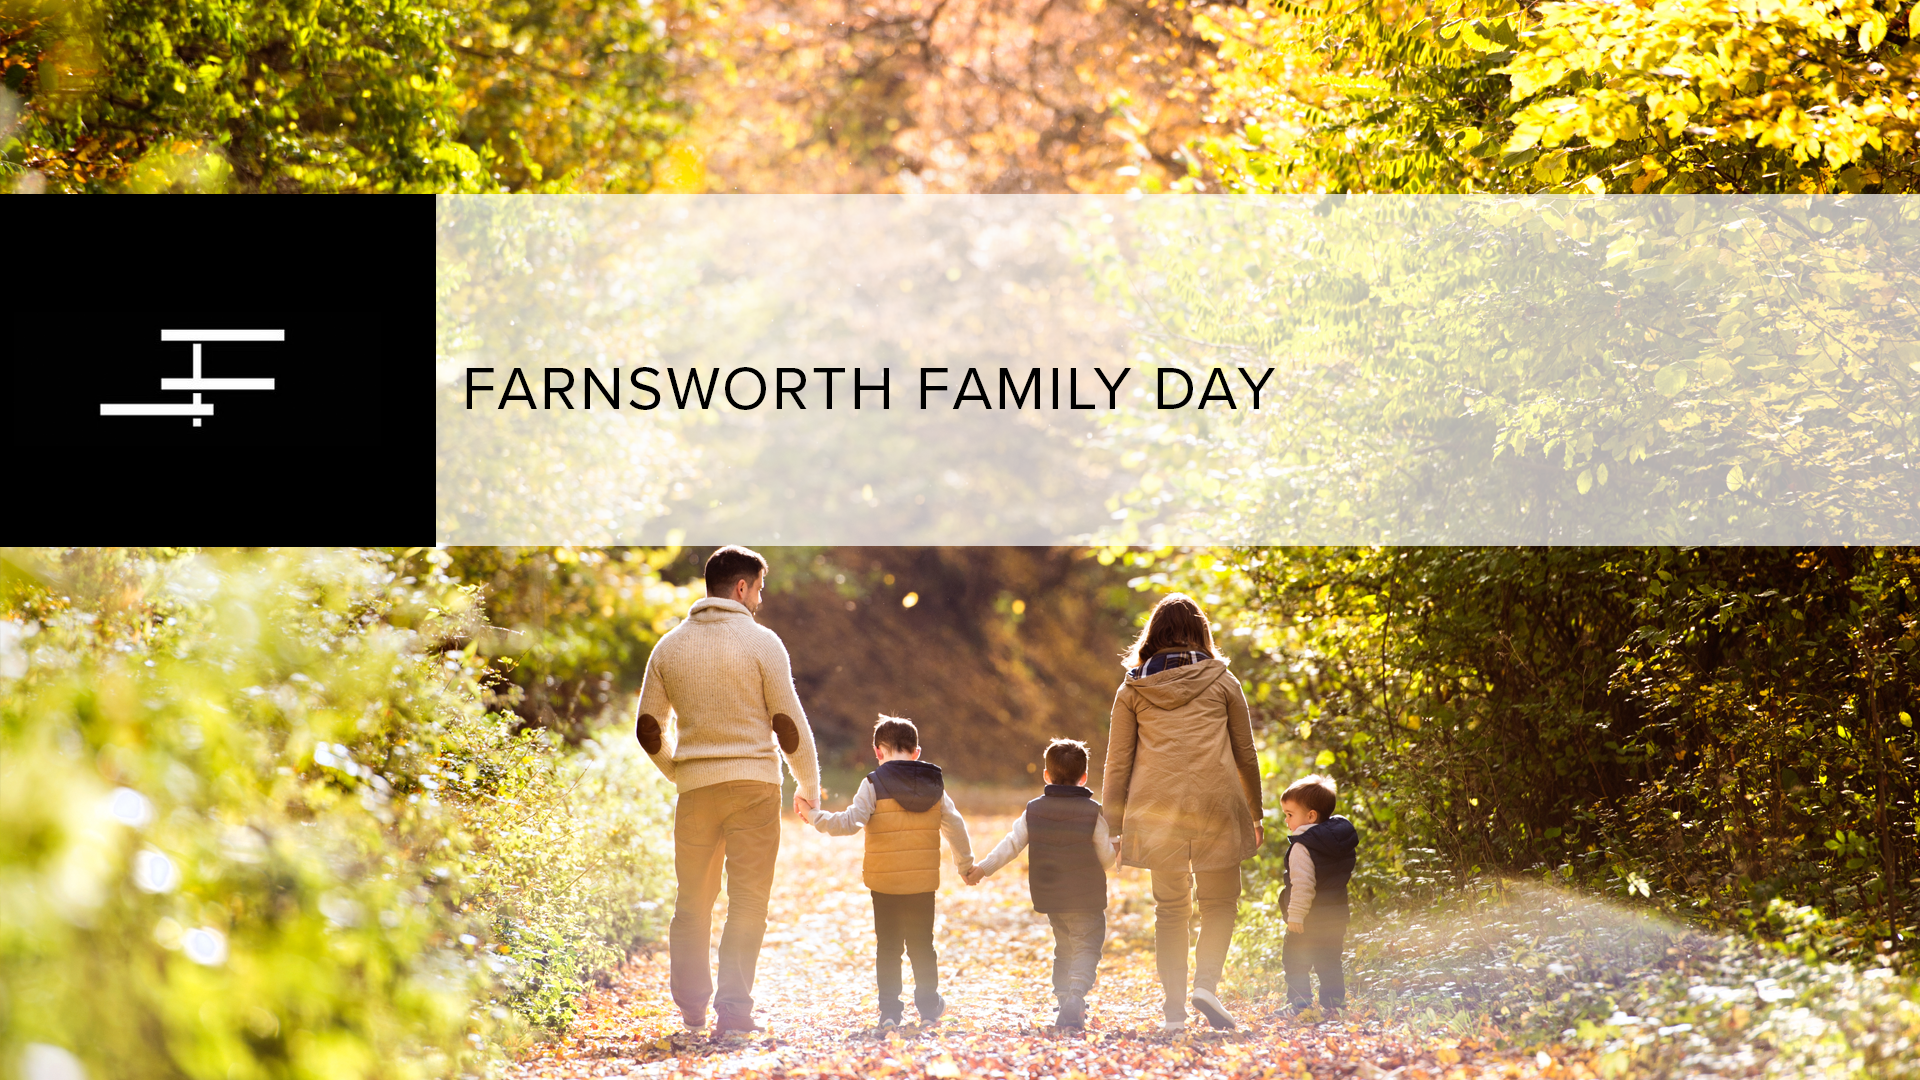 Farnsworth Family Day